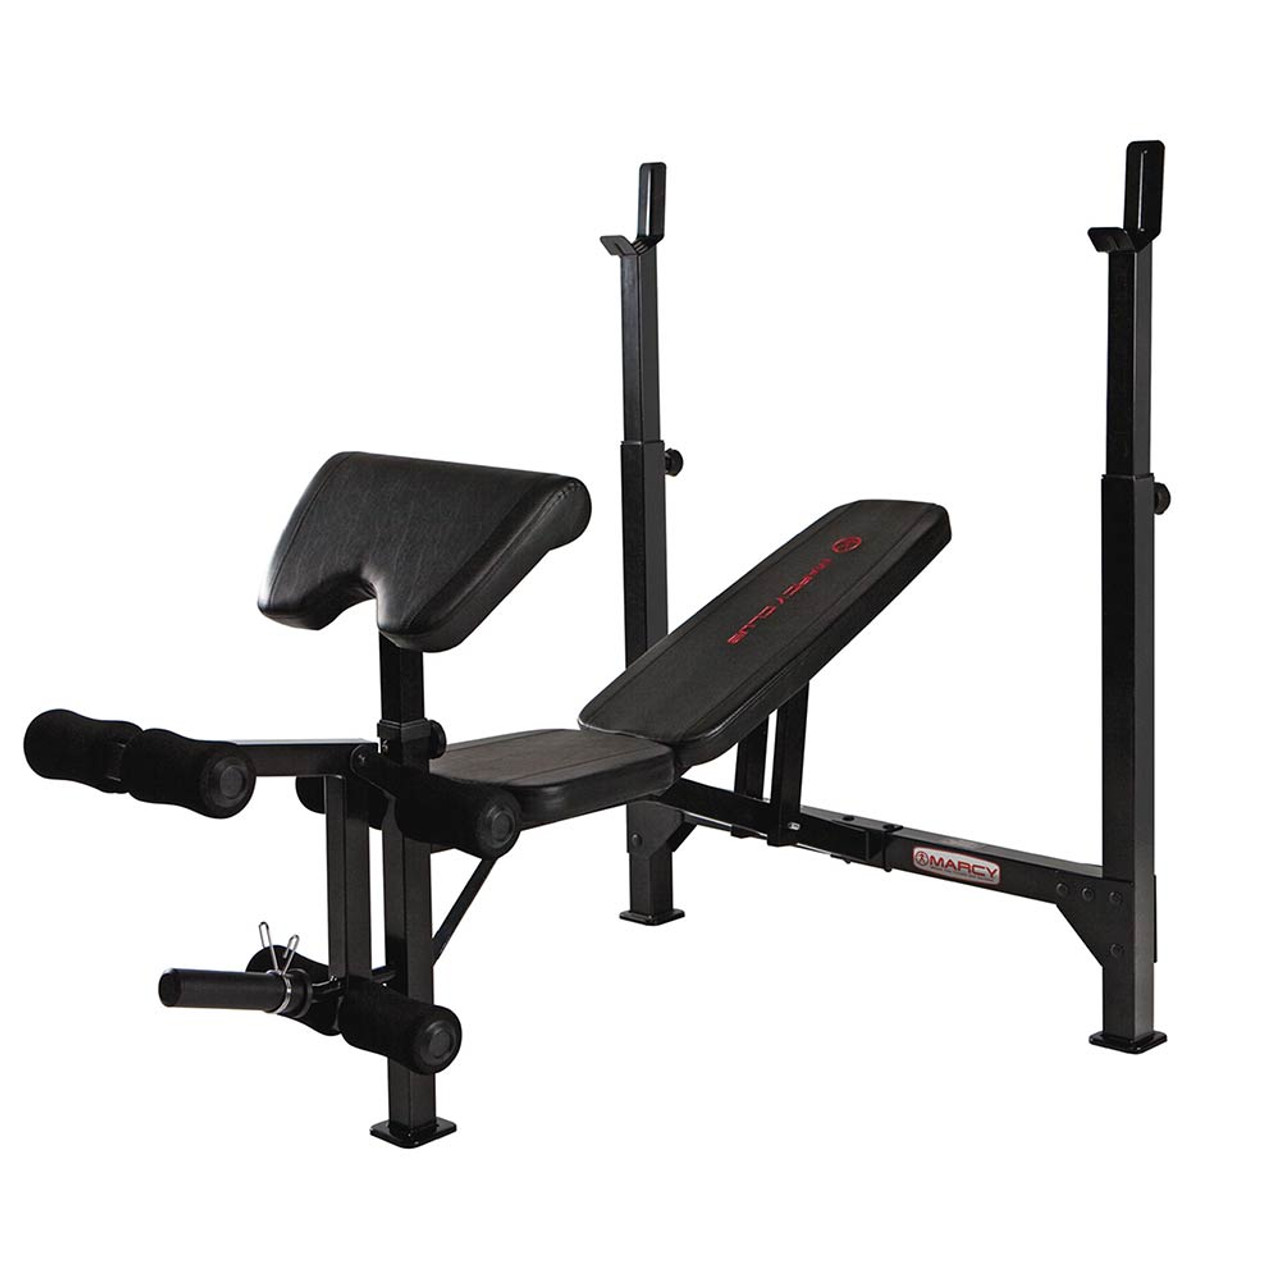 The MarcyClub Olympic Weight Bench   MKB 733 Has A Sturdy And Durable  Construction